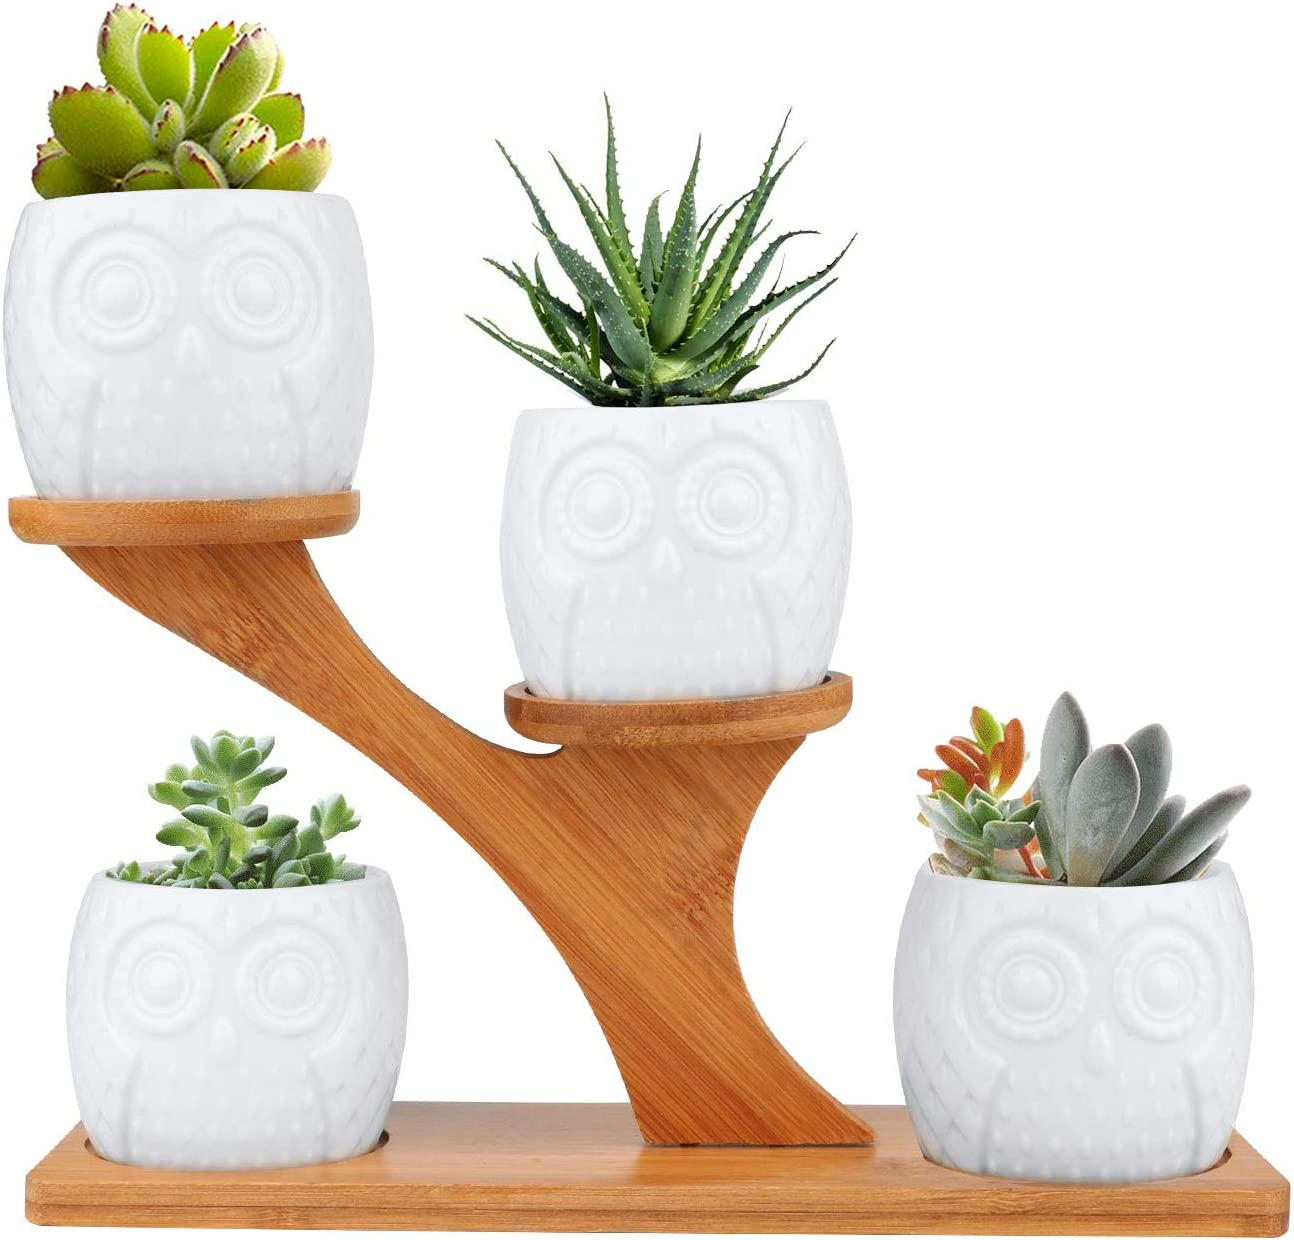 White Owl Ceramic Succulent Pots, Brajttt 4Pcs Modern Decorative Flower Planters w/ 4 Tier Bamboo Saucers Stand Holder &Drainage, Home Office Desk Garden Mini Cactus & Flower Pots